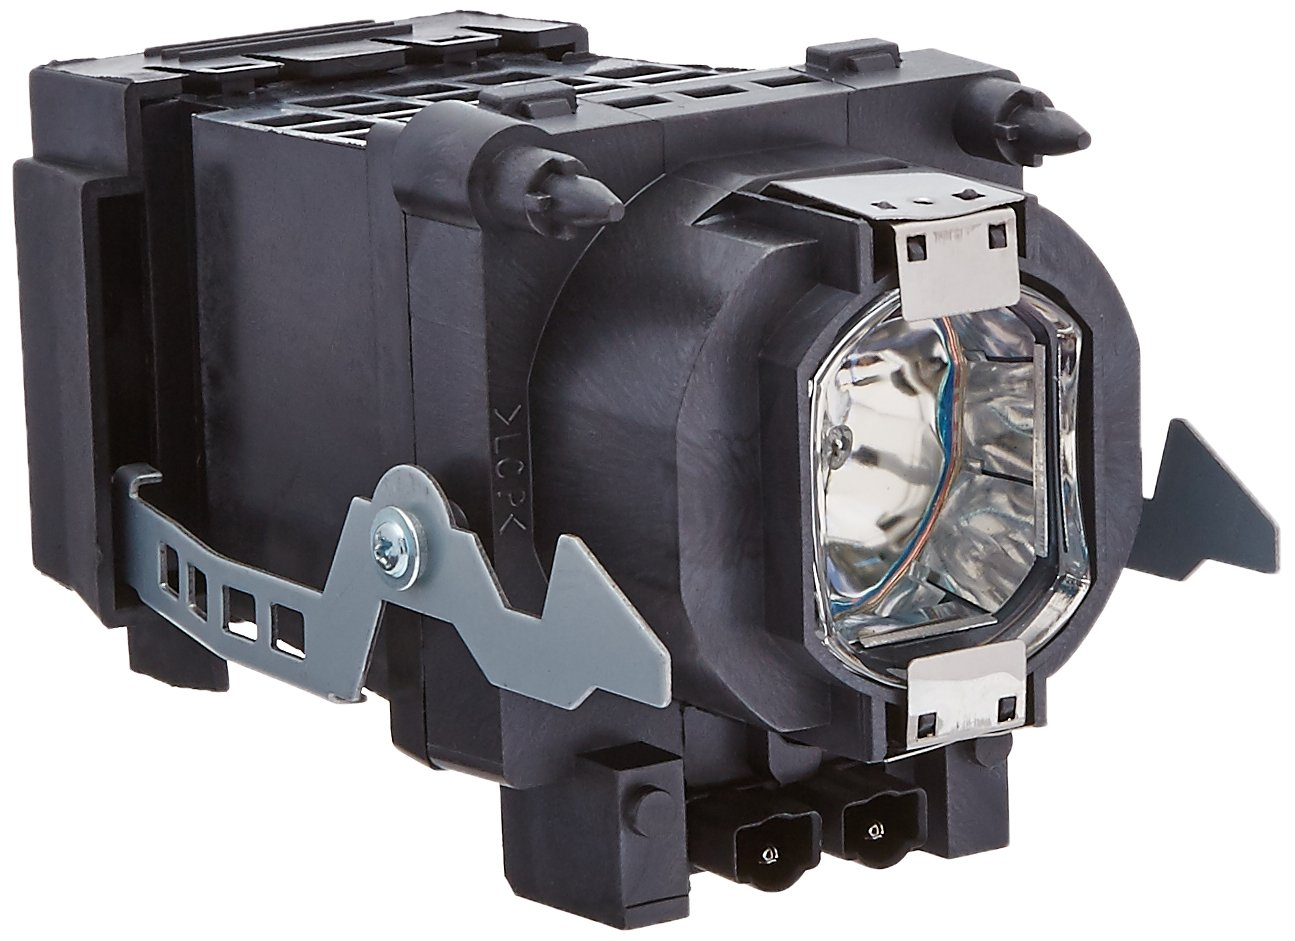 Generic Replacement for Sony KDF-50E2000 TV Lamp with Housing (C603139W1696)